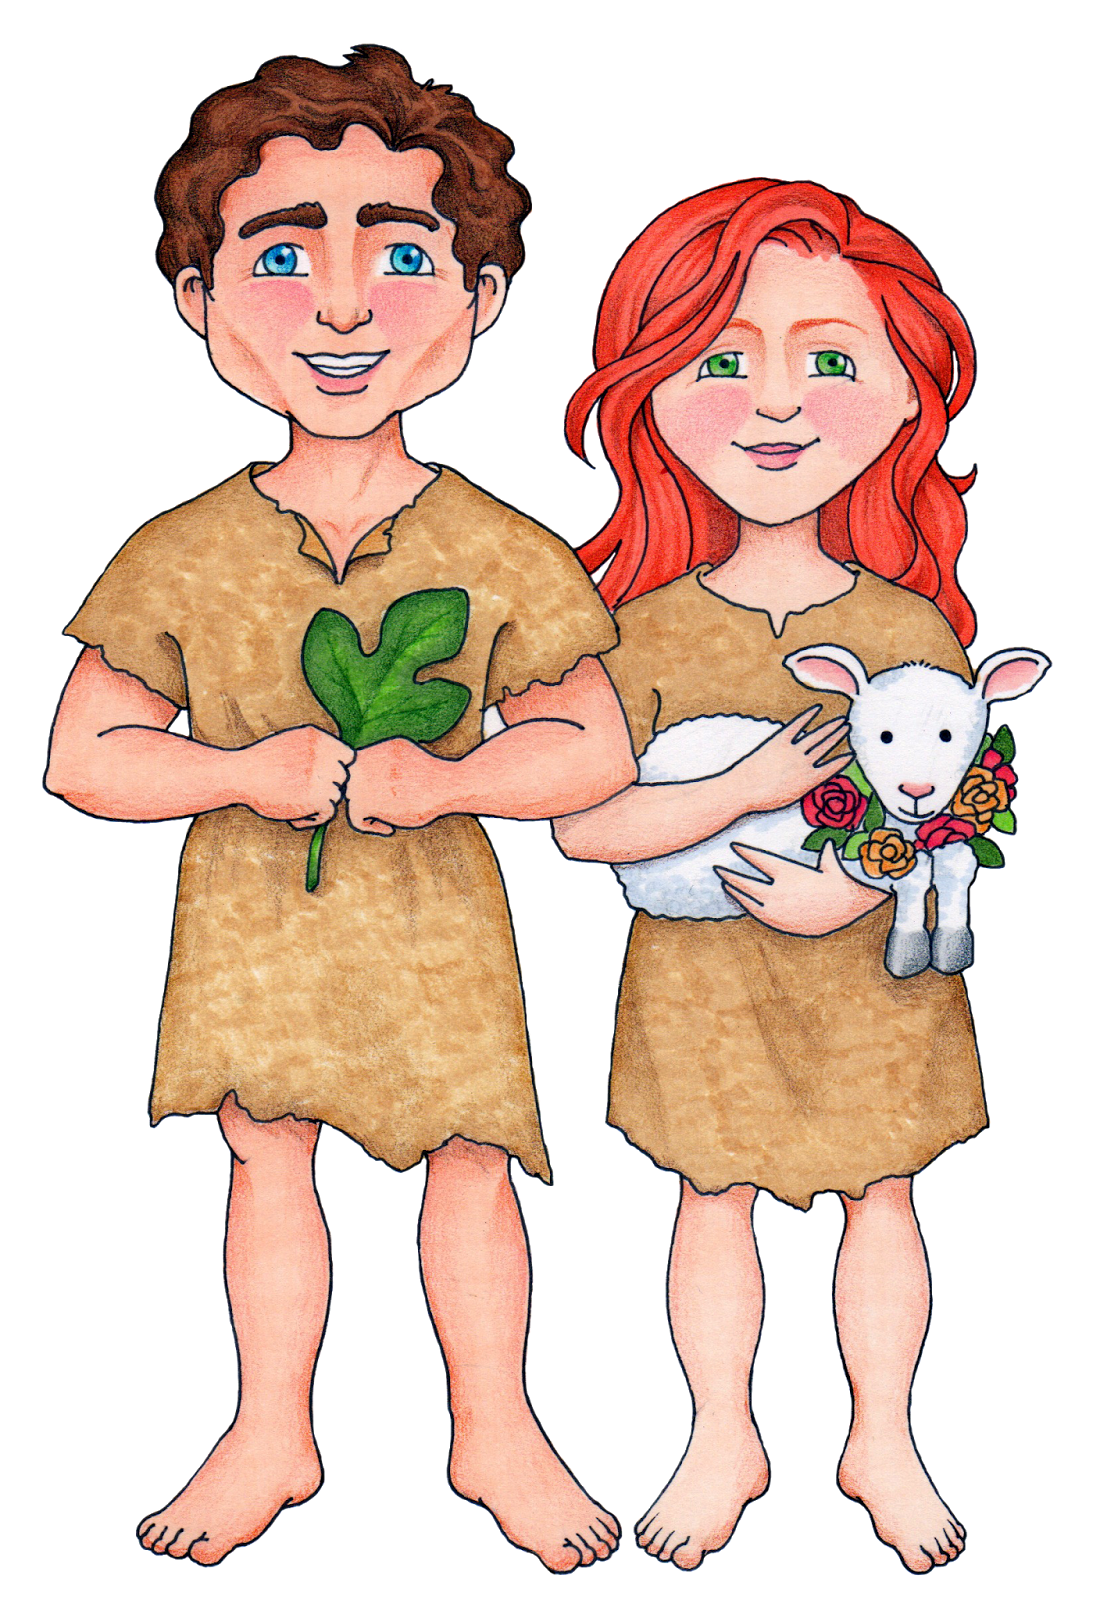 Adam And Eve clipart Art Eve & Garden Clip